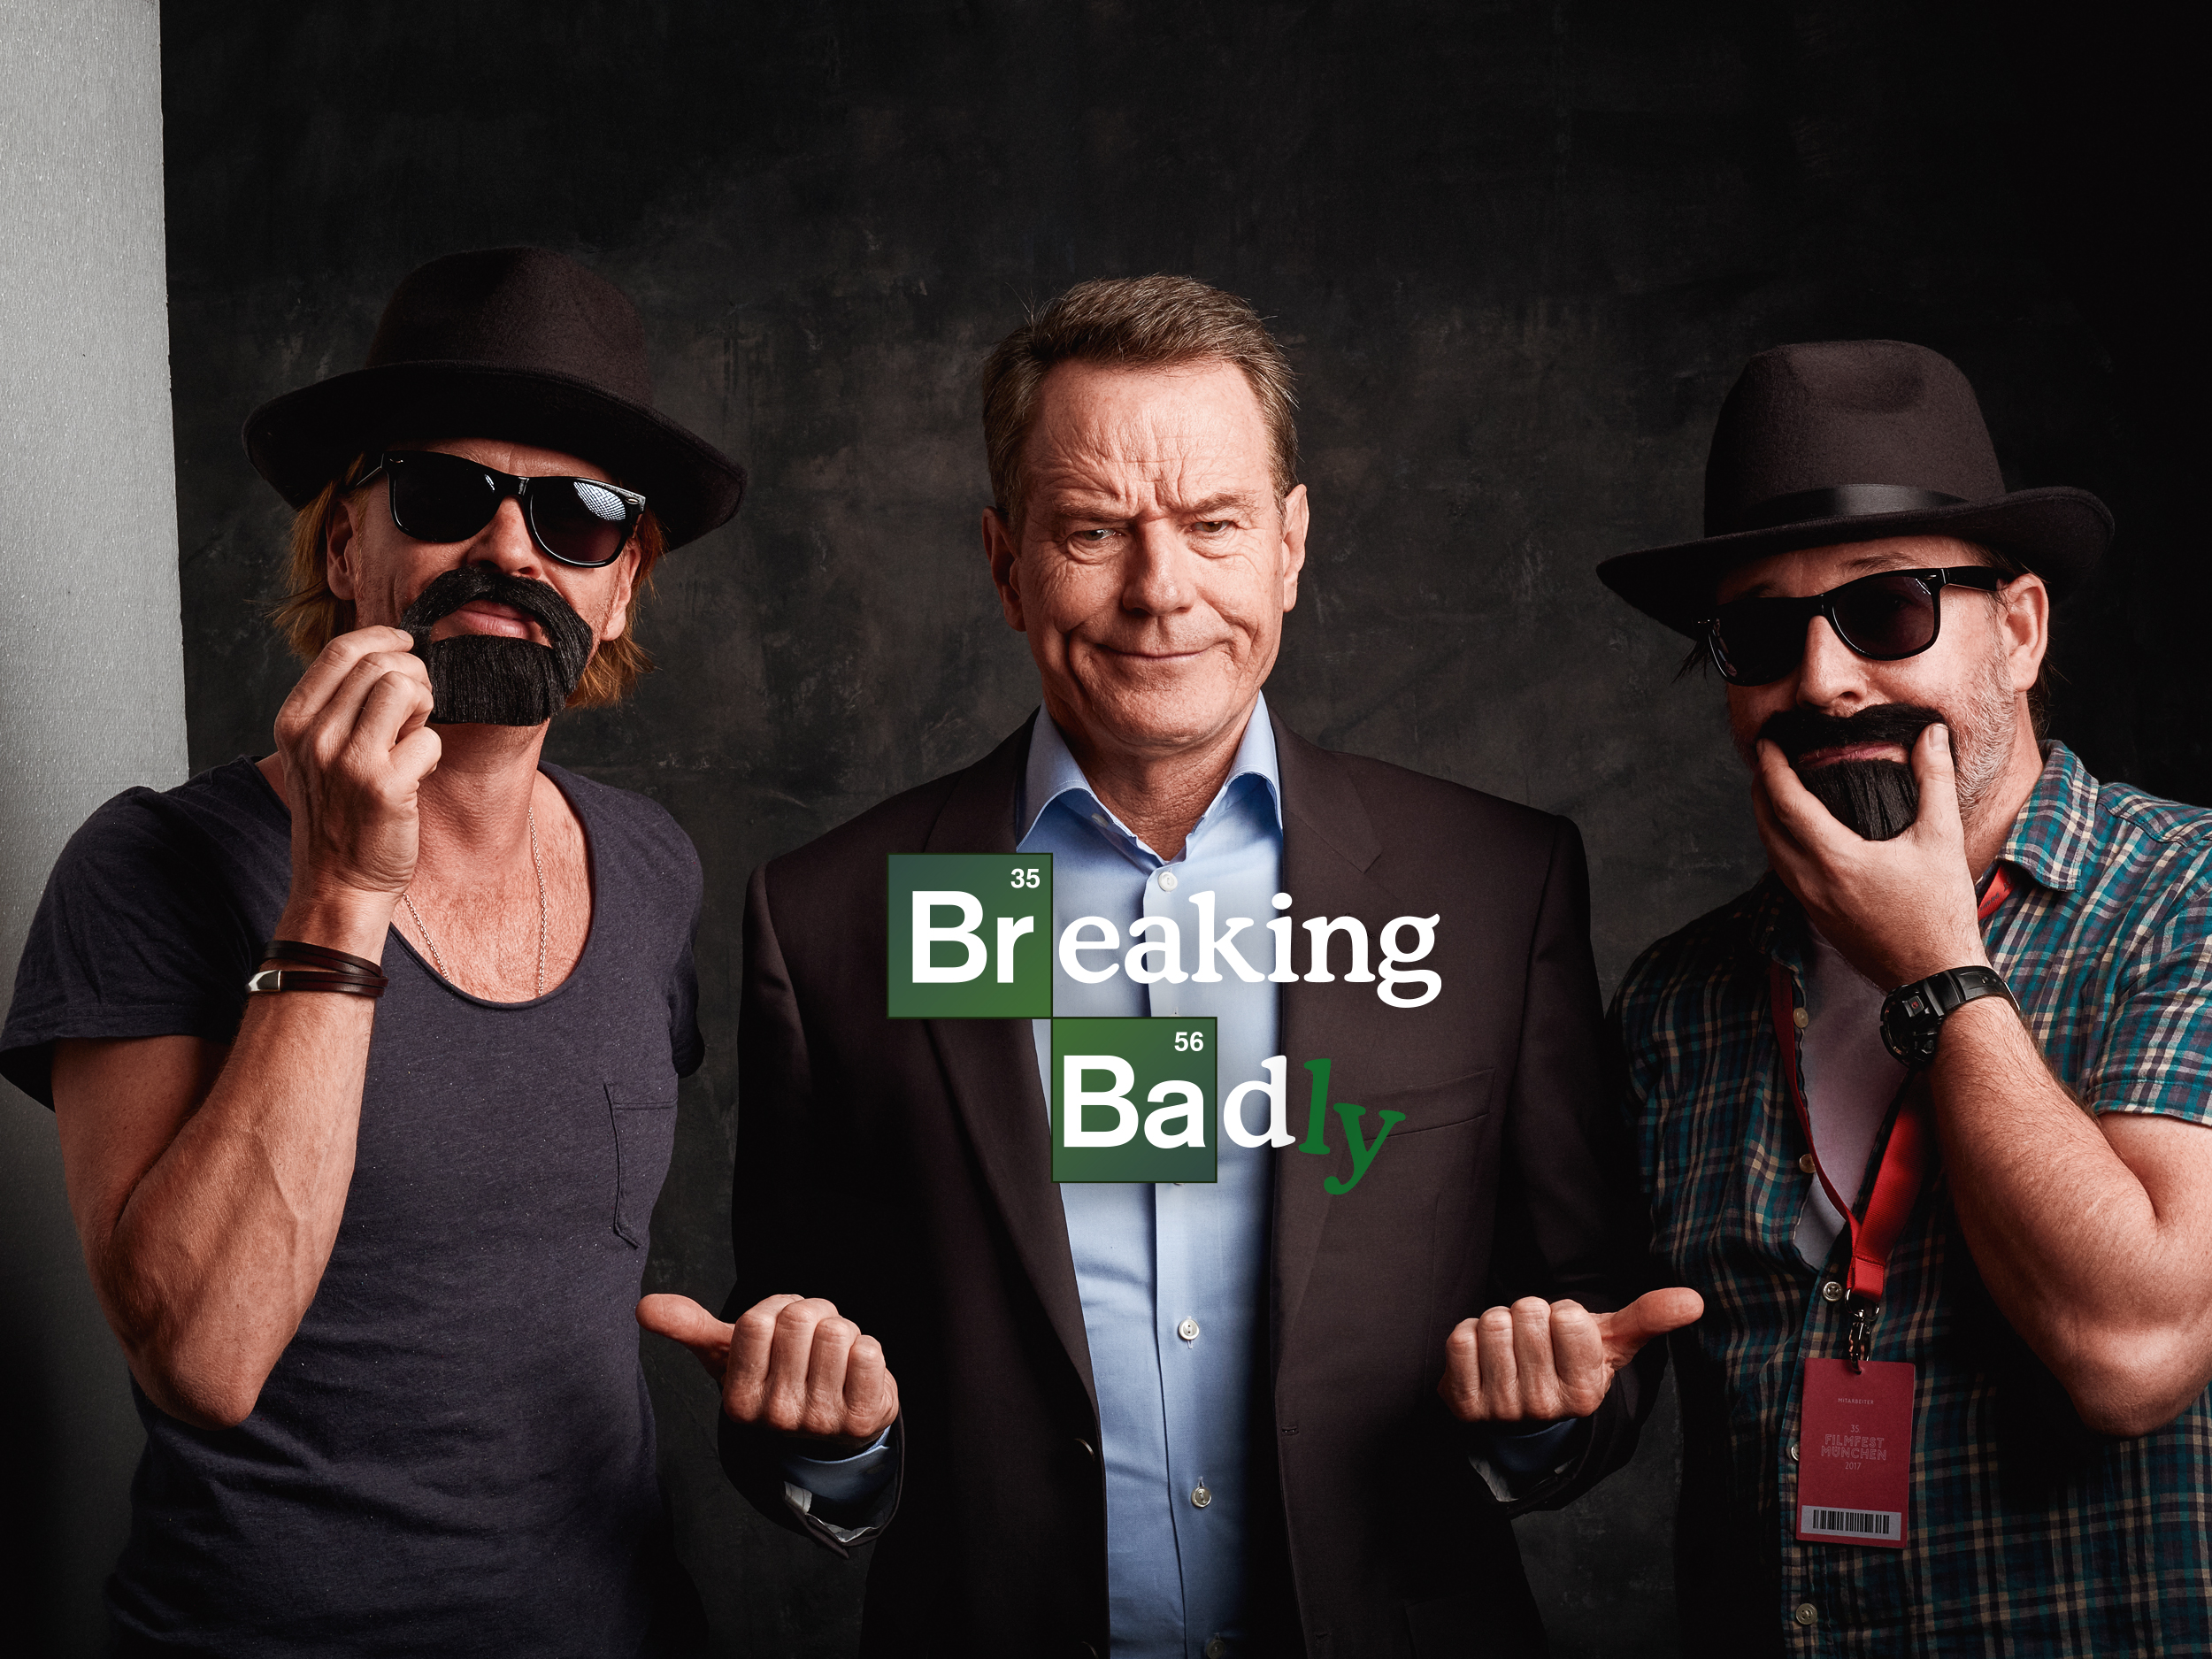 Mike Kraus & Marc Perino are »breaking badly« with  Bryan Cranston